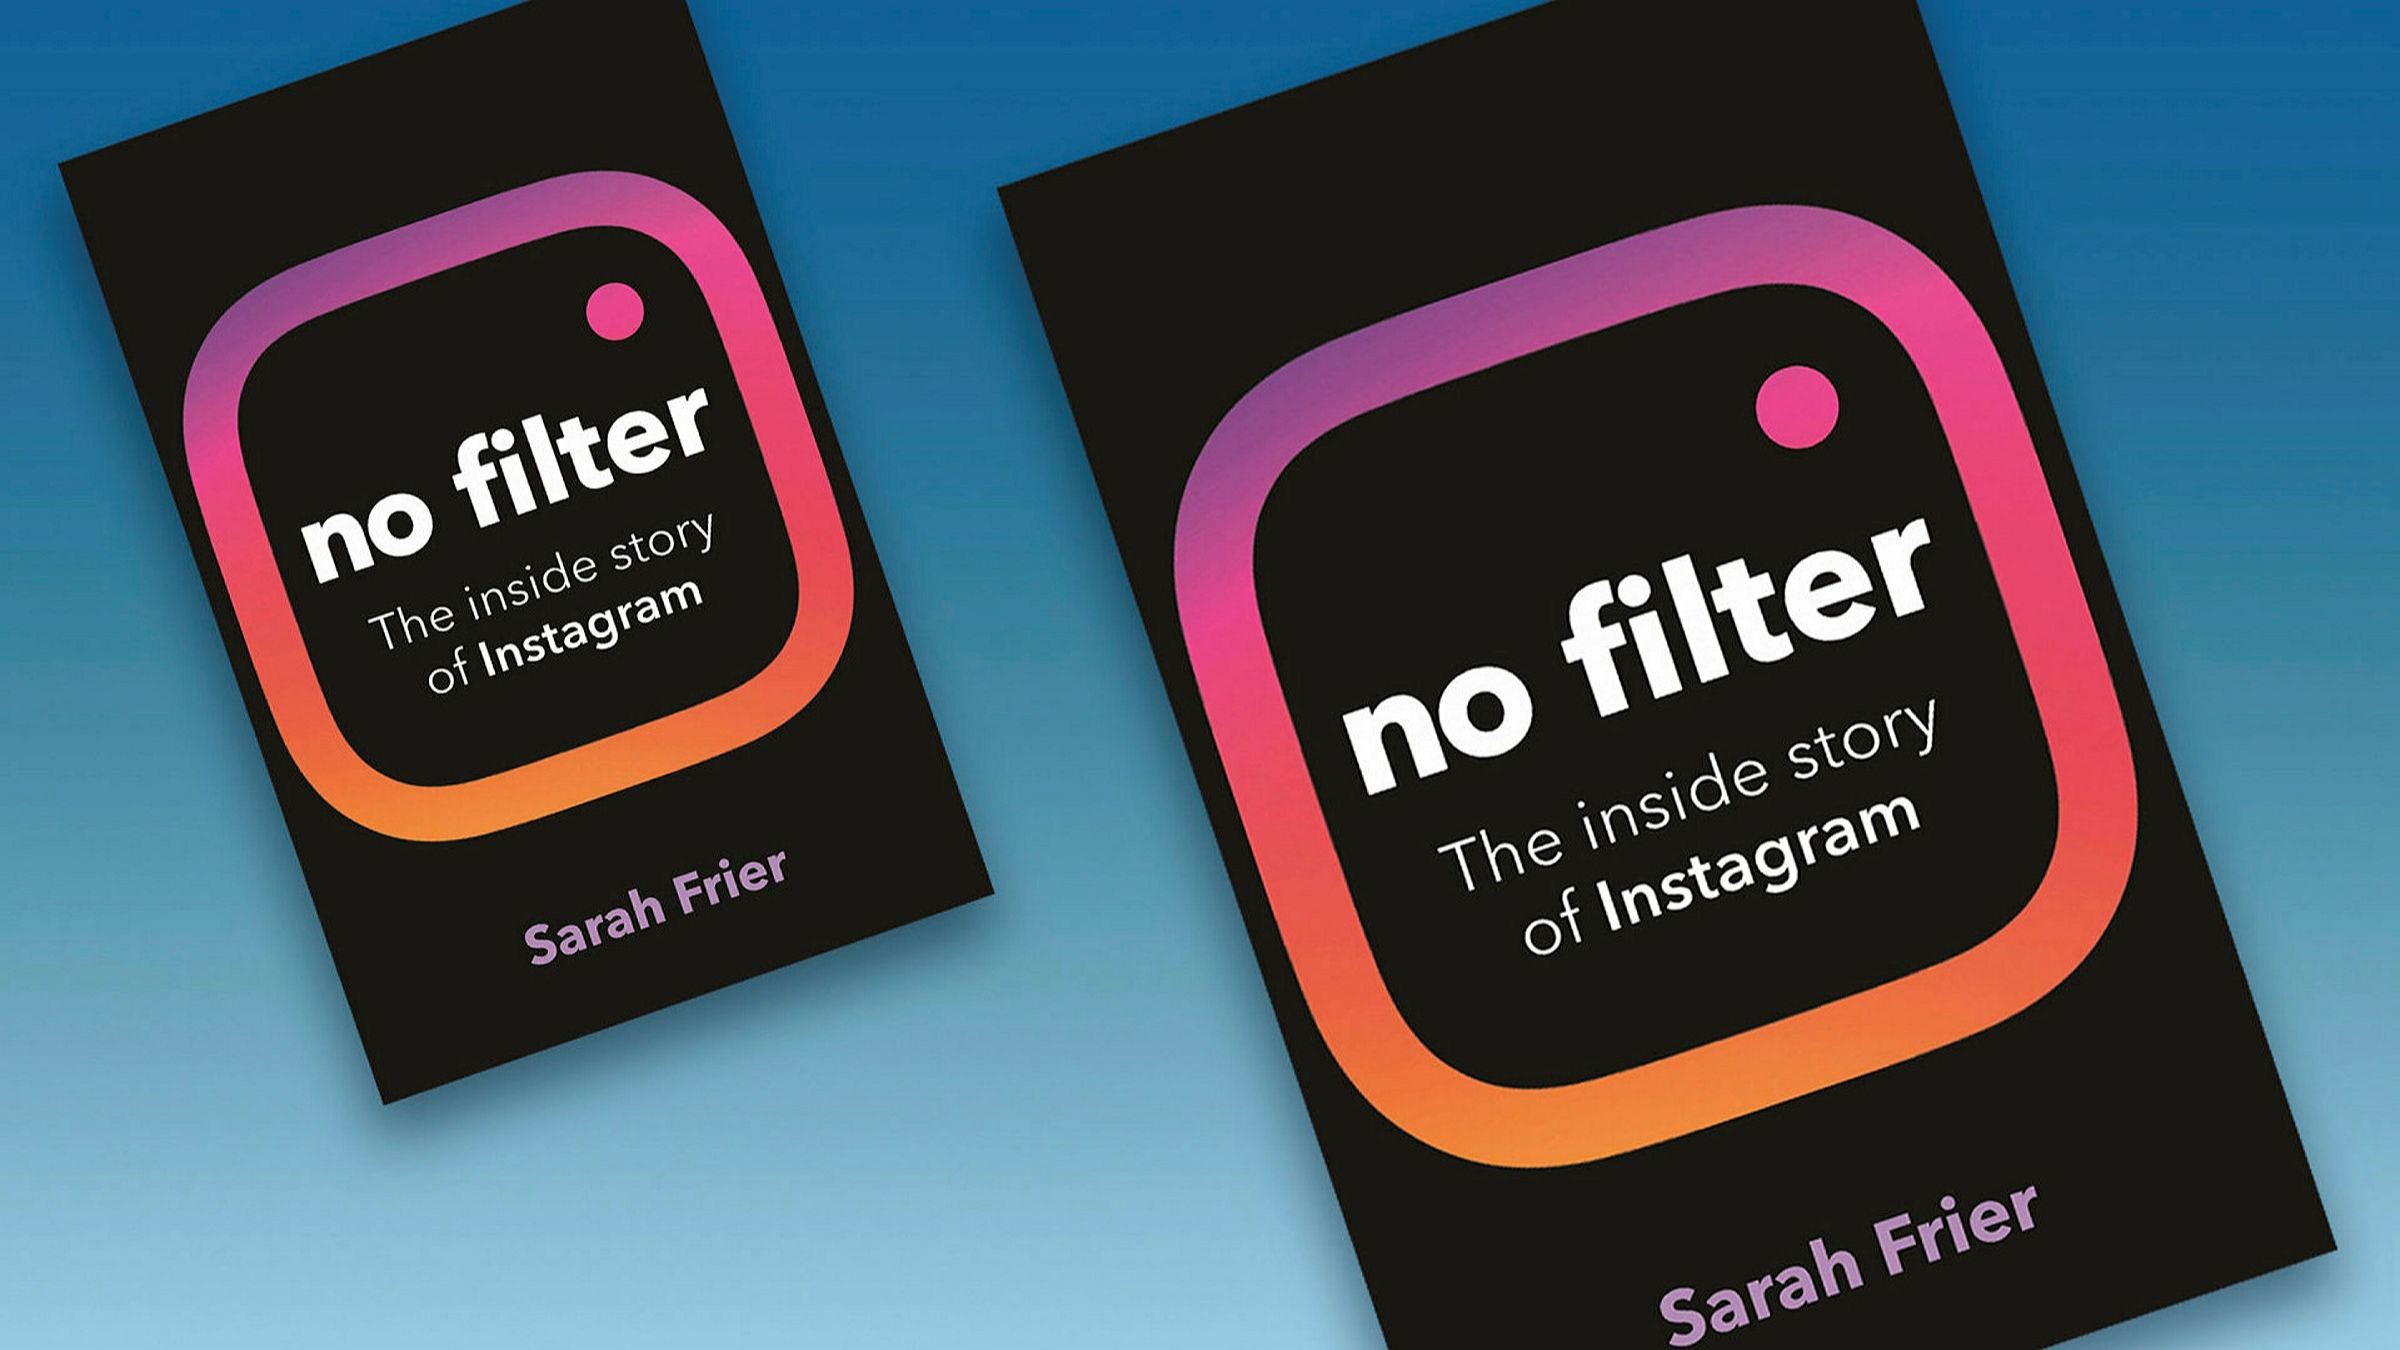 ft.com - Andrew Hill - The inside story of Instagram's rise wins the FT/McKinsey book prize